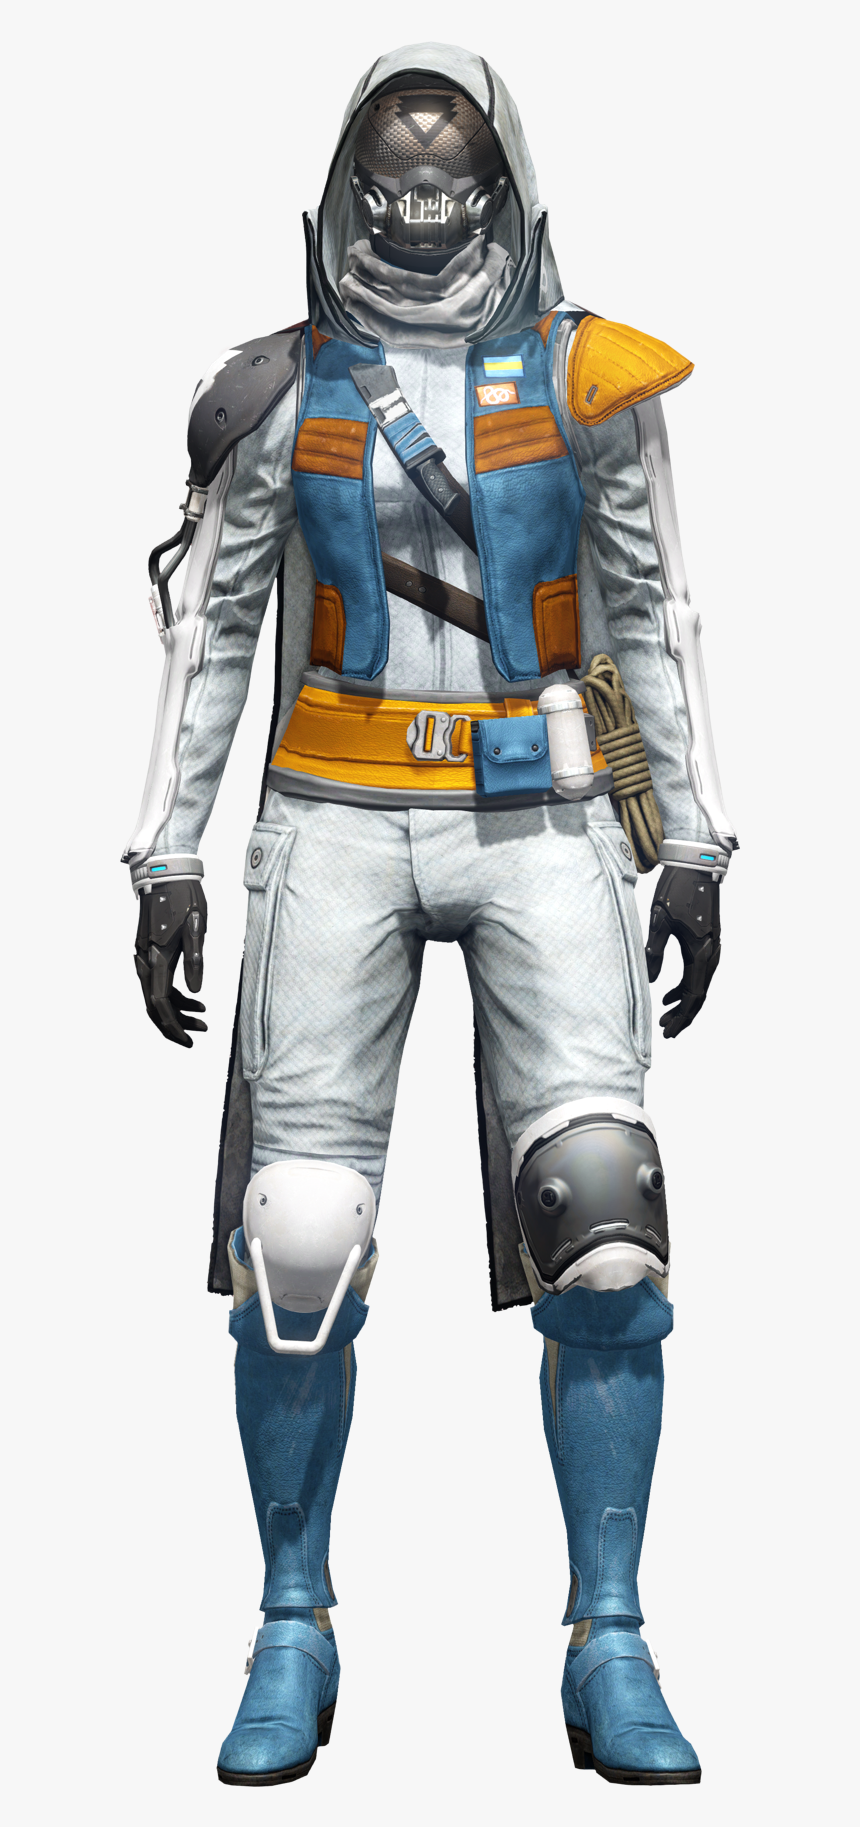 Gallery Image - Destiny Hunter Long Tomorrow, HD Png Download, Free Download